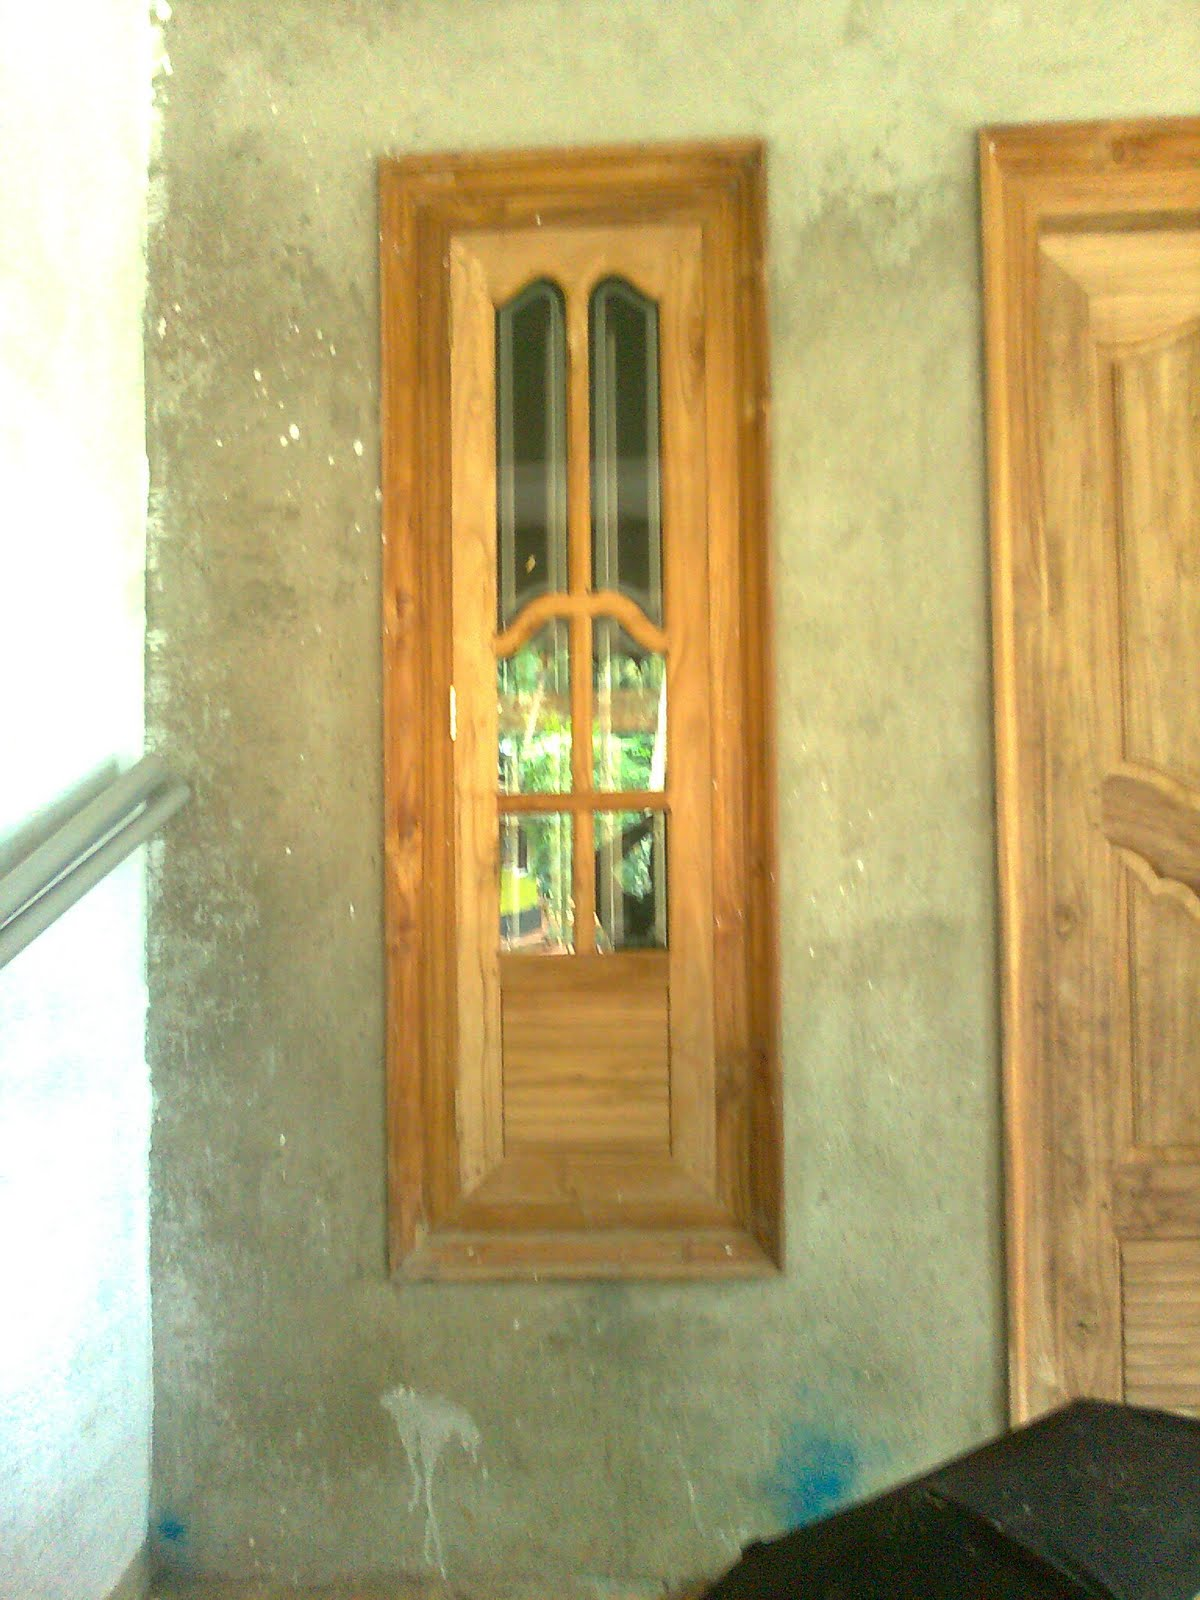 Bavas wood works wooden window doors simple designs for The door and the window